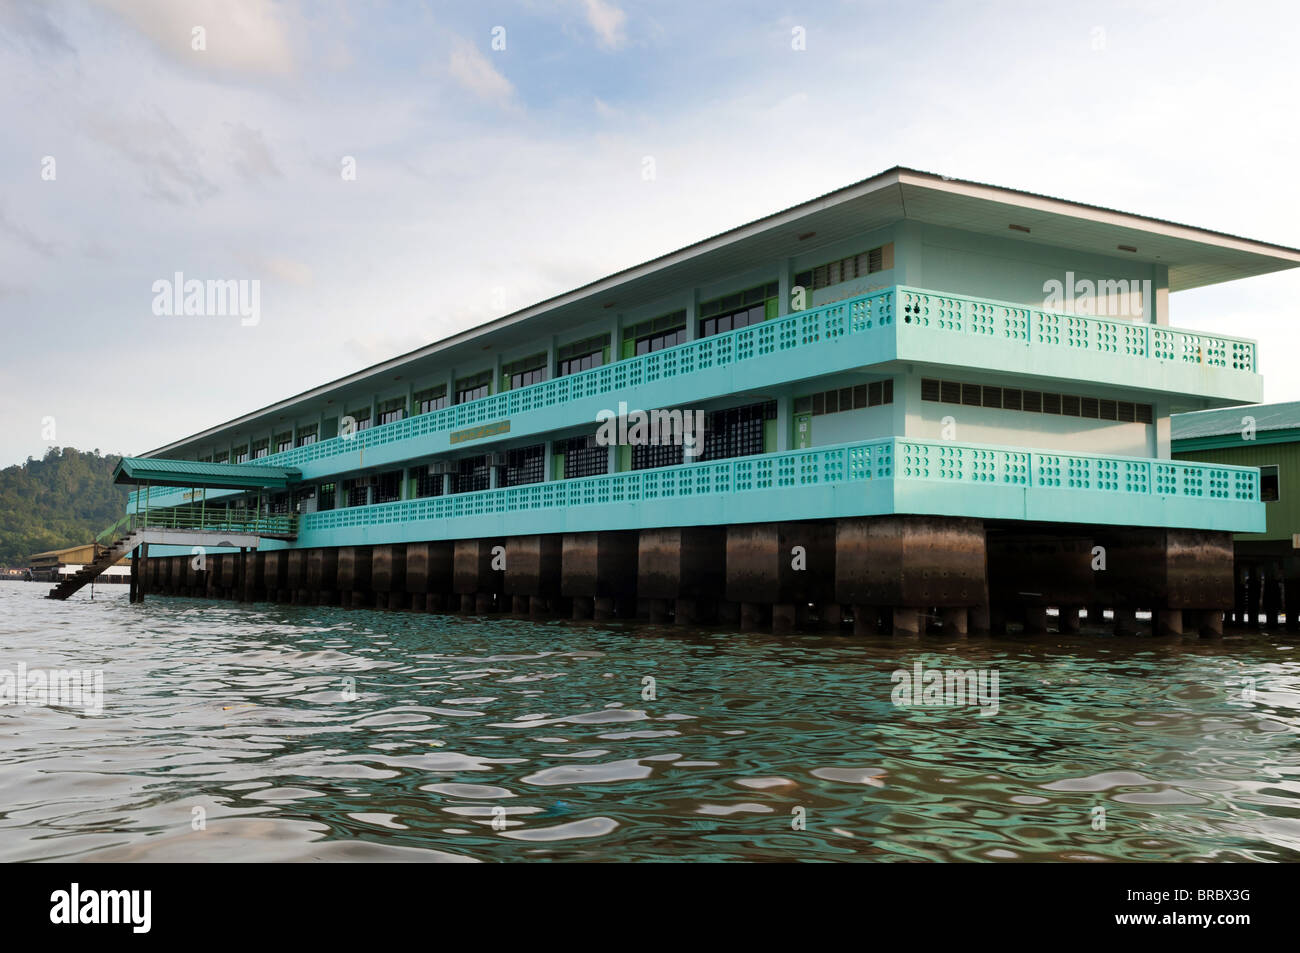 School in Water Village in Bandar Seri Begawan, Brunei - Stock Image